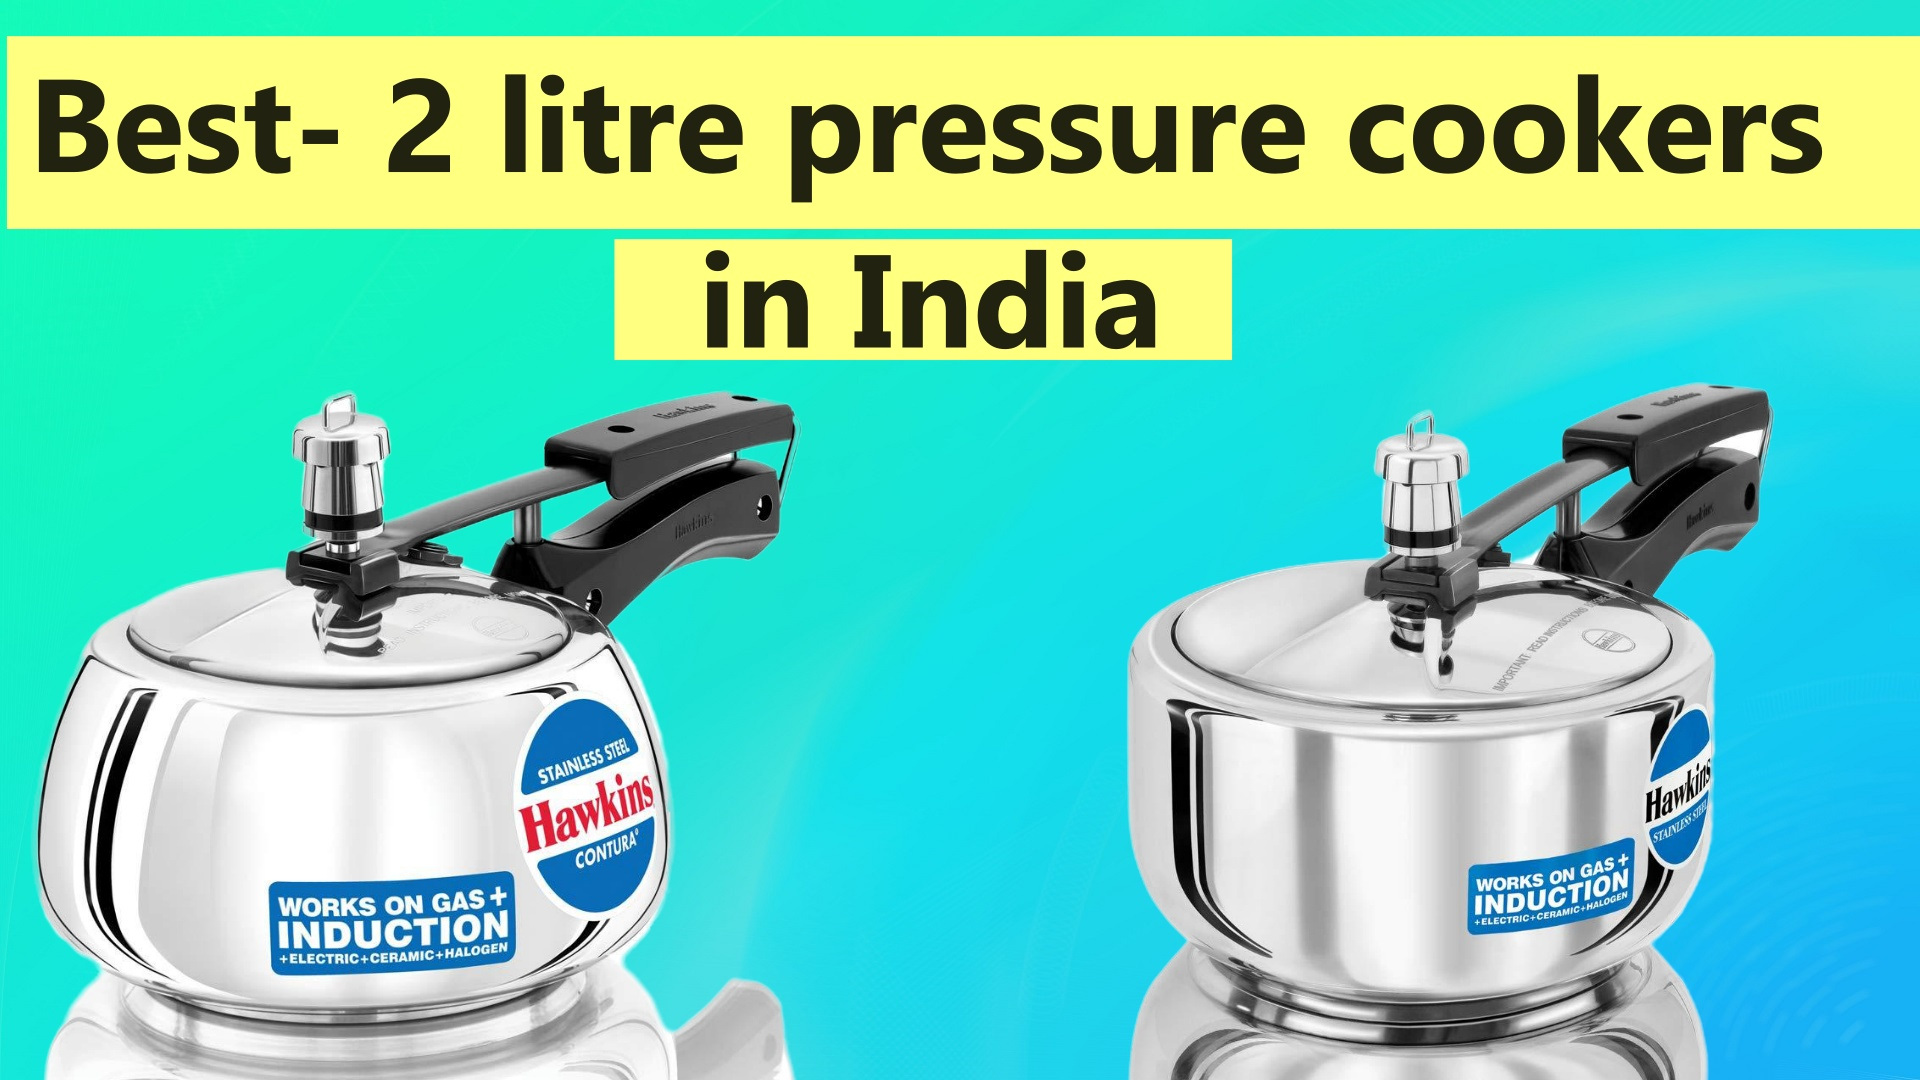 Best 2 litre pressure cookers in India